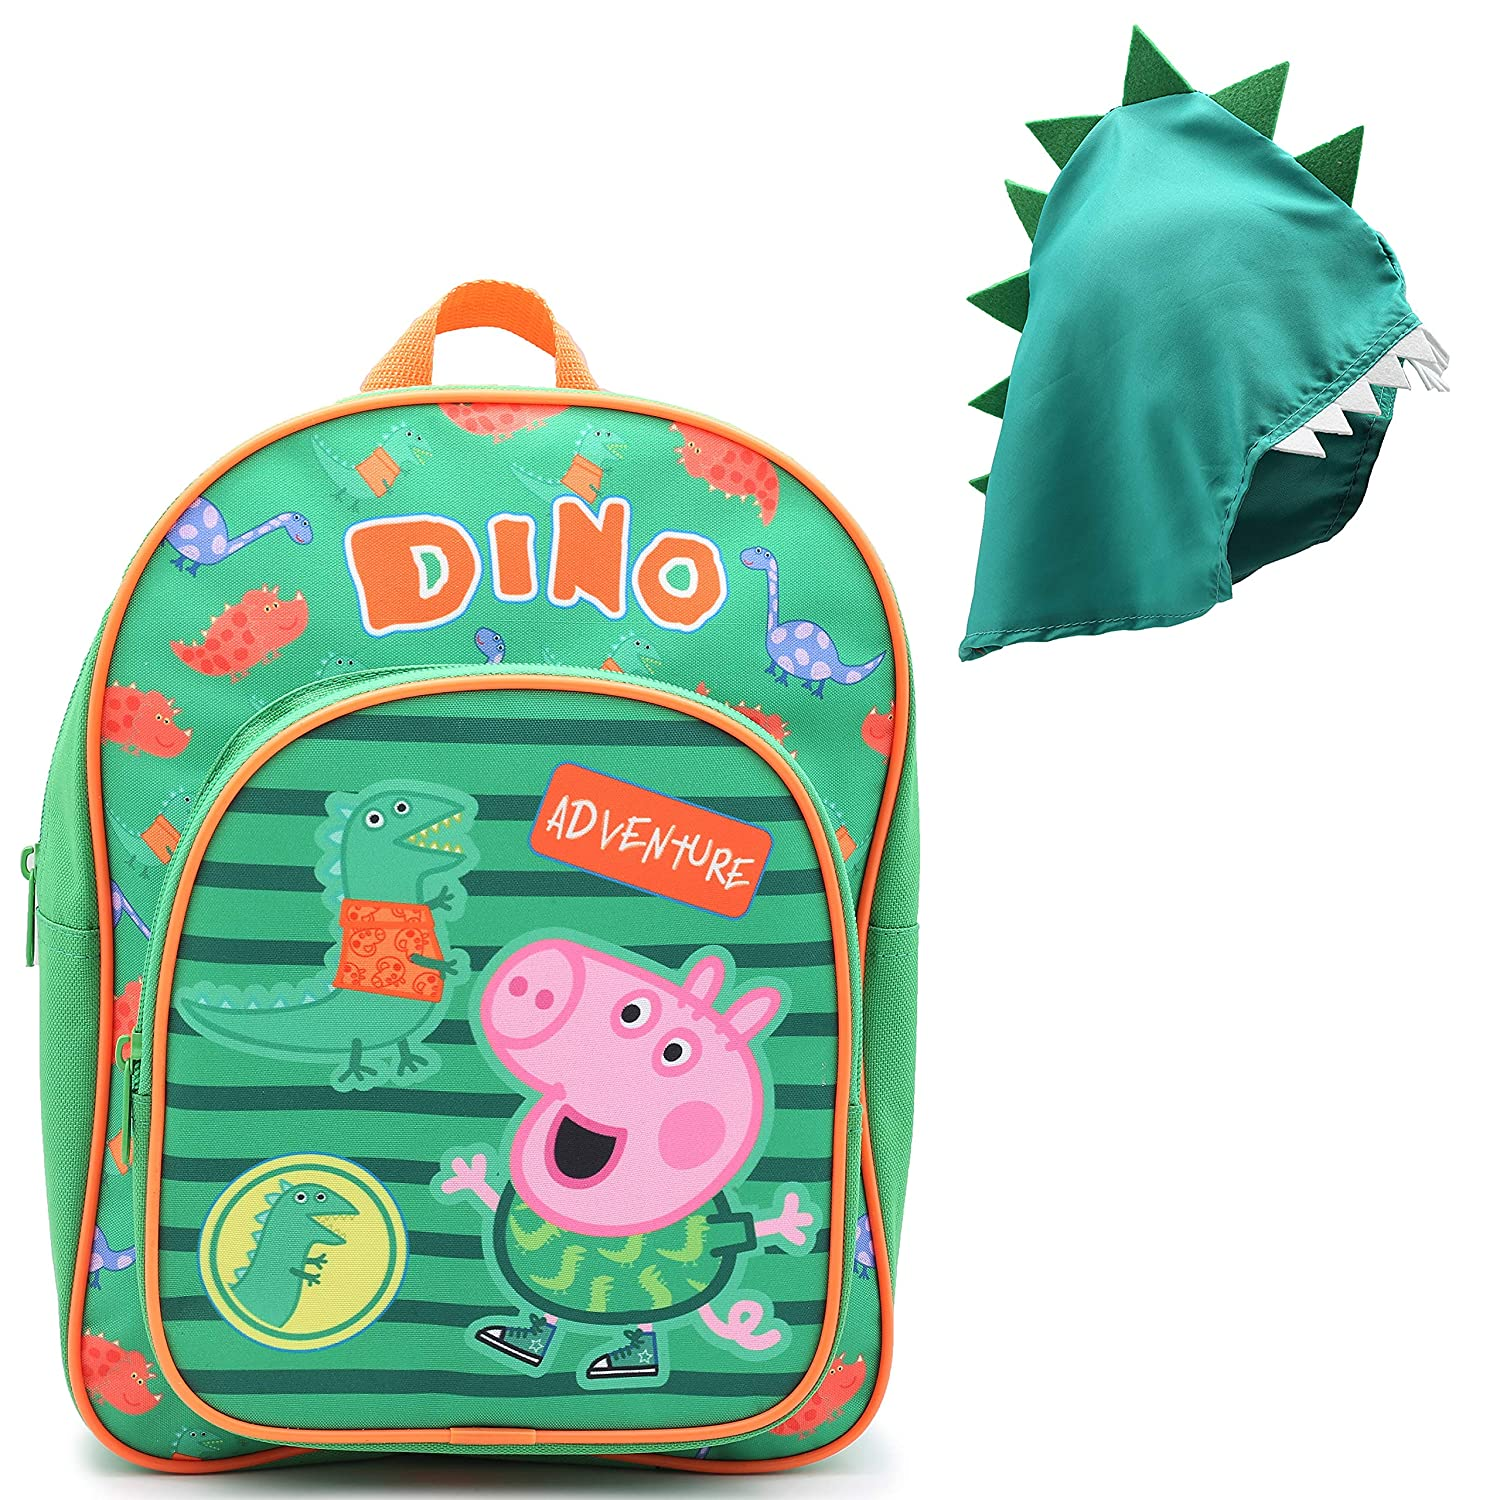 Peppa Pig Bag George Pig Backpack School Accessories with Detachable Dinosaur Hood Childs Rucksack